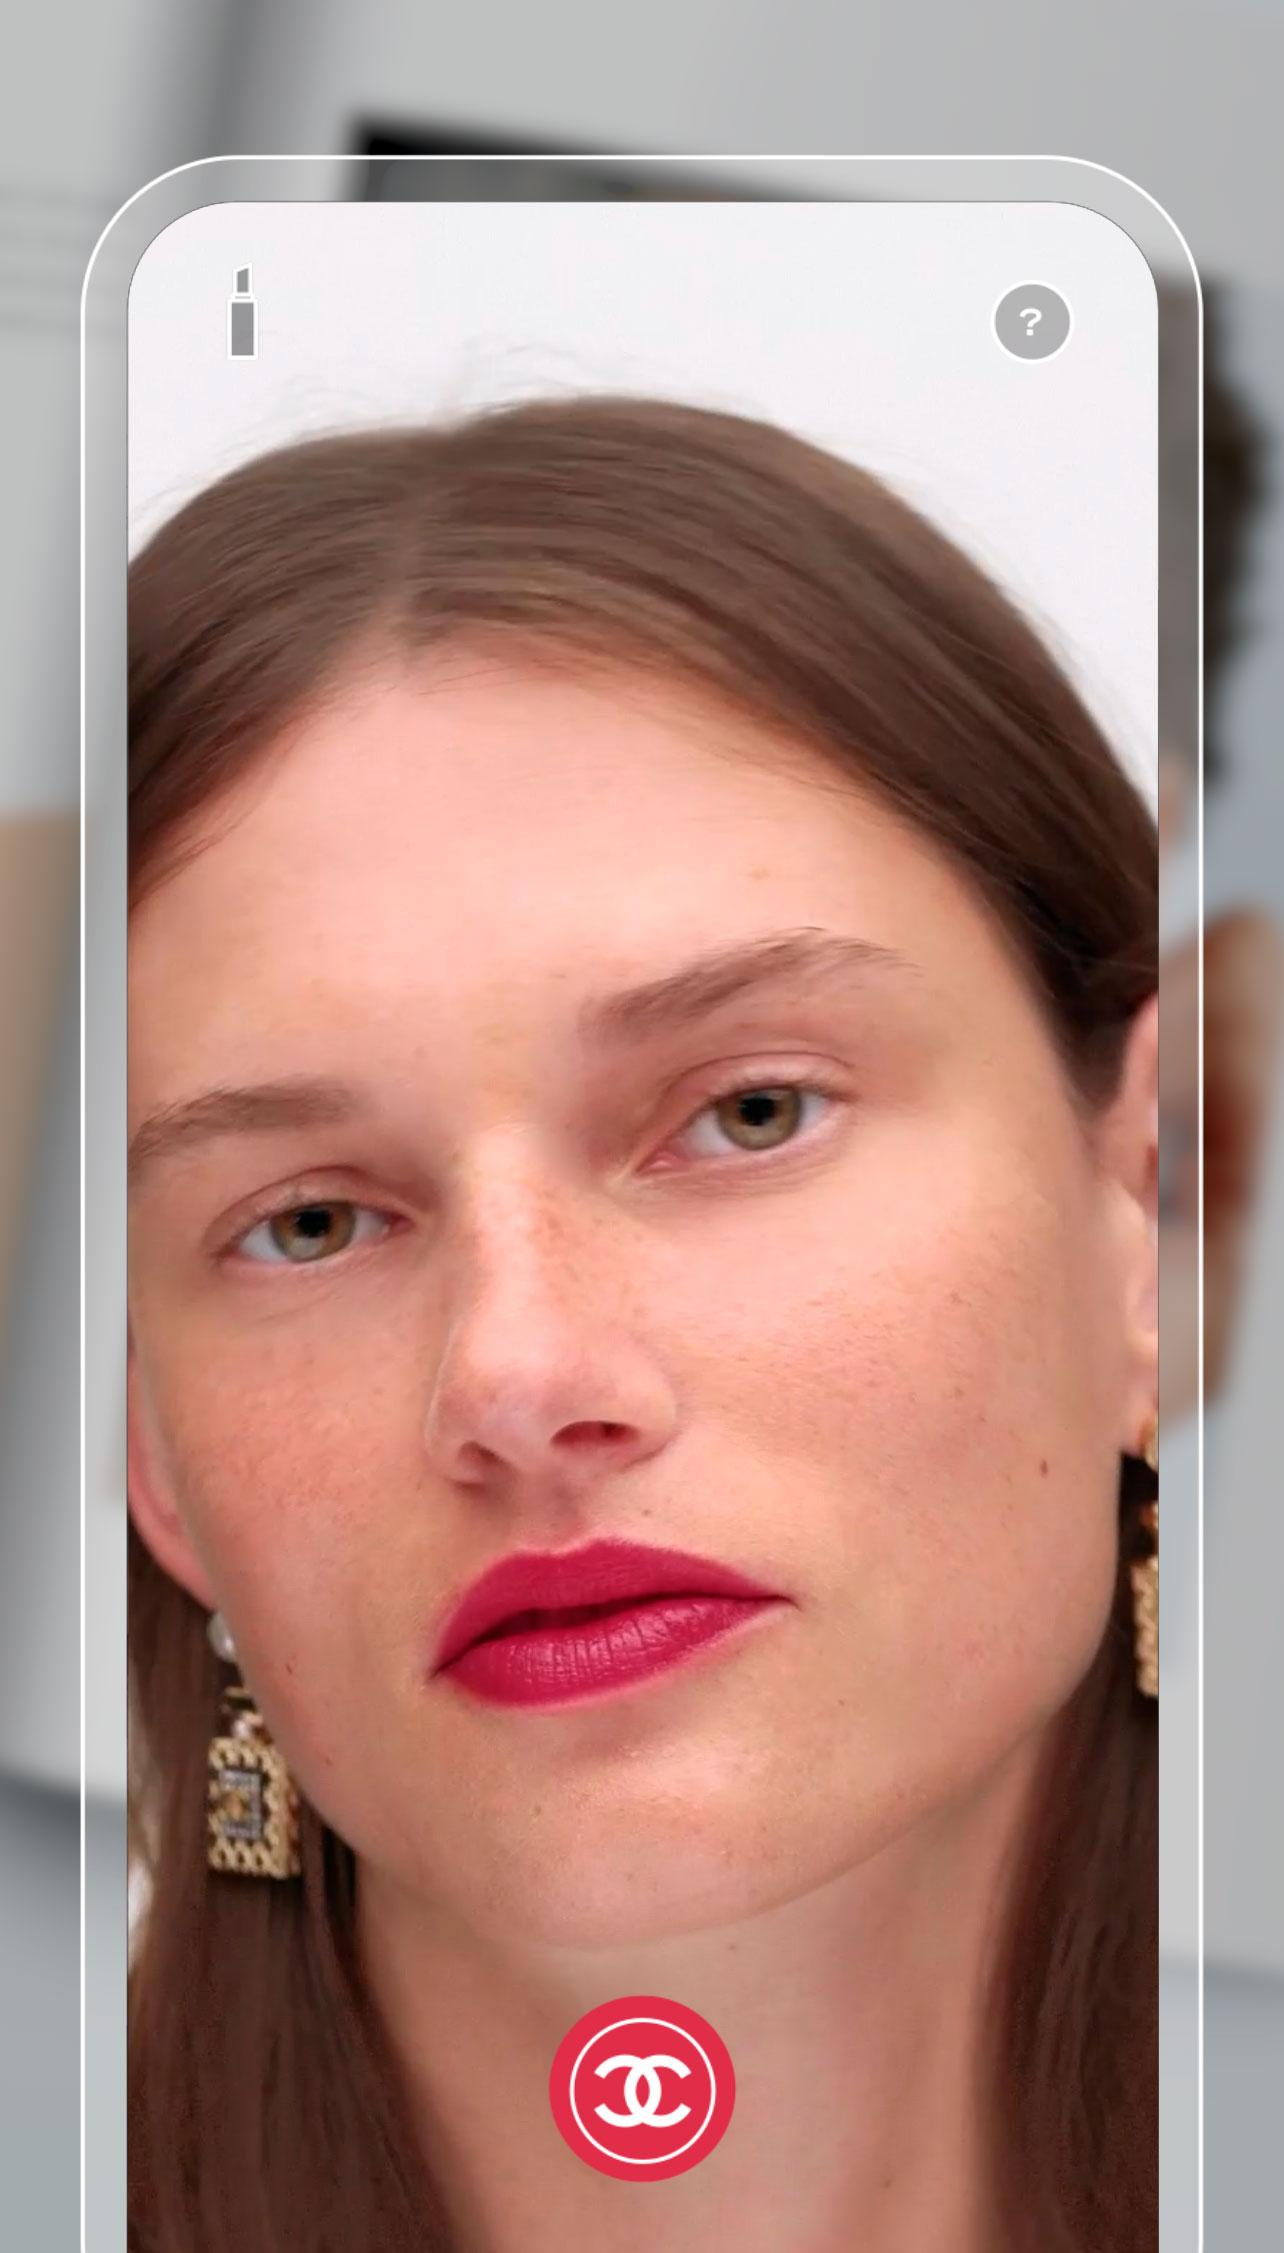 chanel lipscanner app on iphone showing try on technology on woman